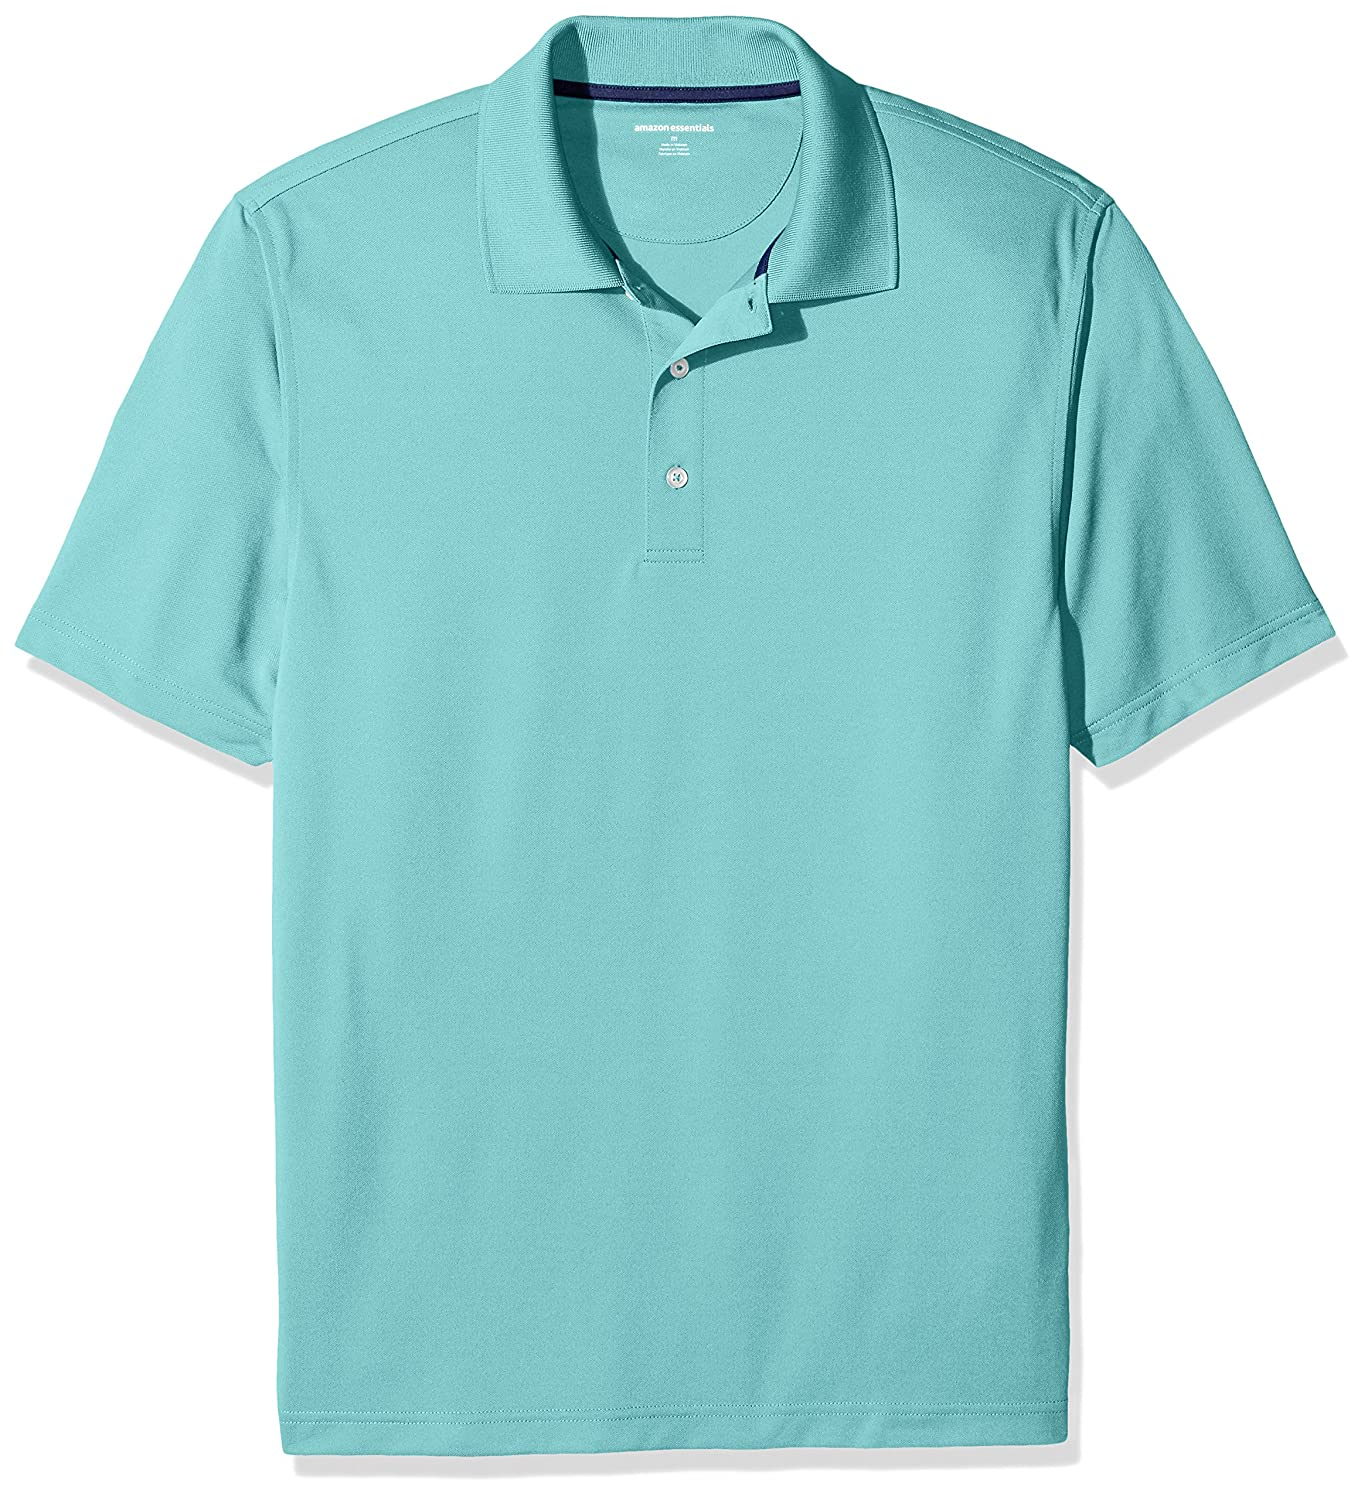 Golf Polo Shirts For Women